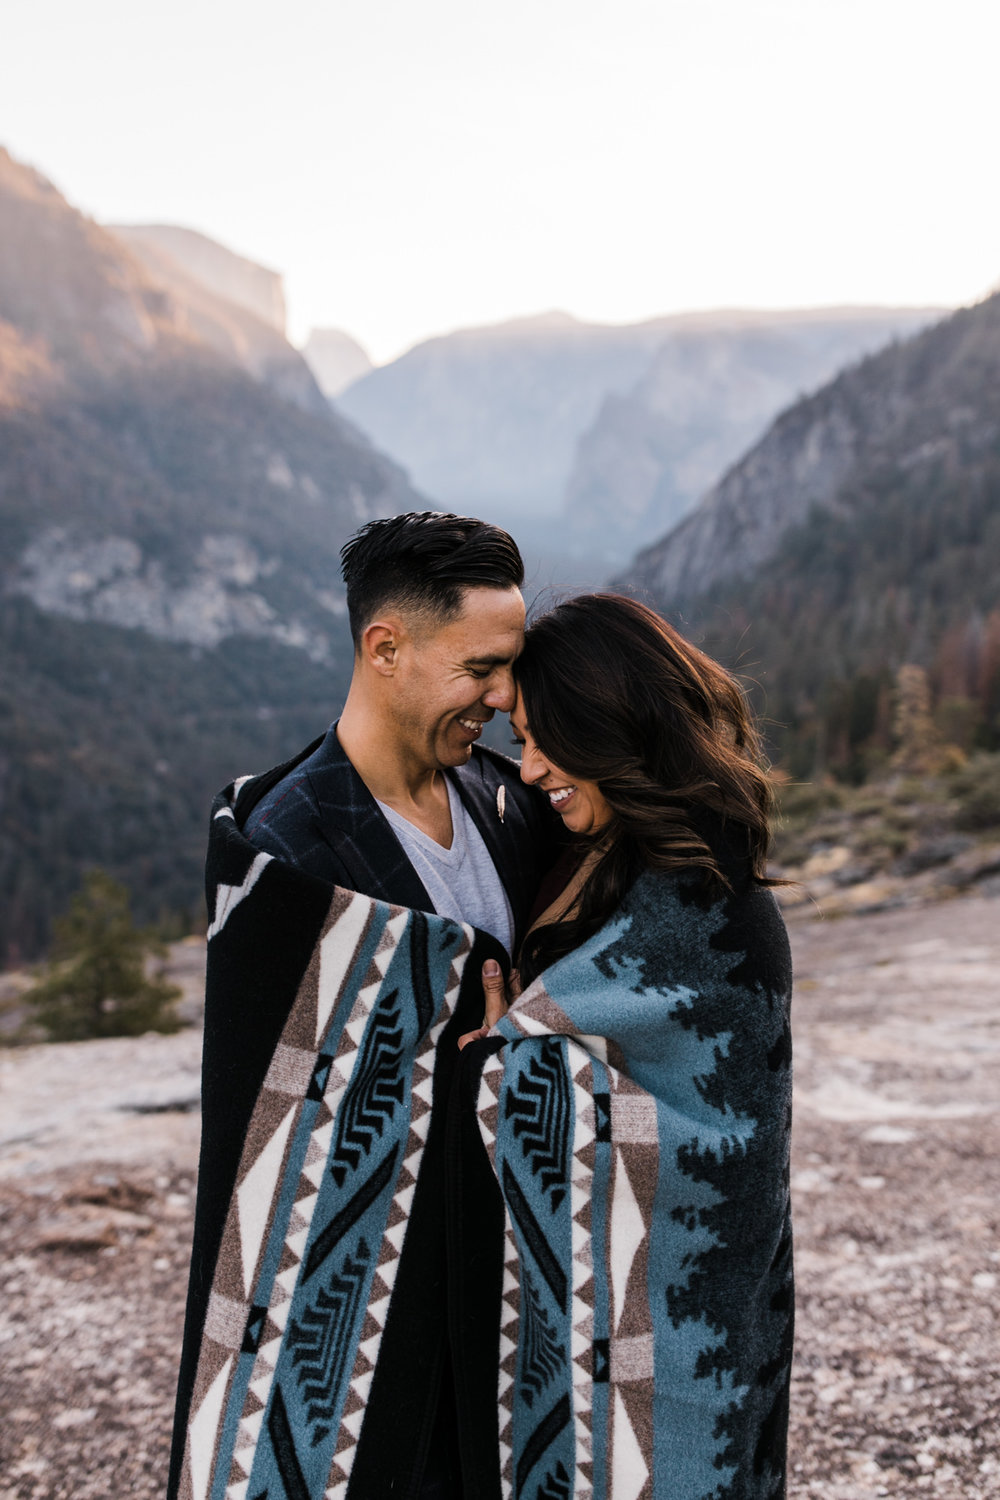 cozy adventure engagement session in yosemite | destination engagement photo inspiration | utah adventure elopement photographers | the hearnes adventure photography | www.thehearnes.com